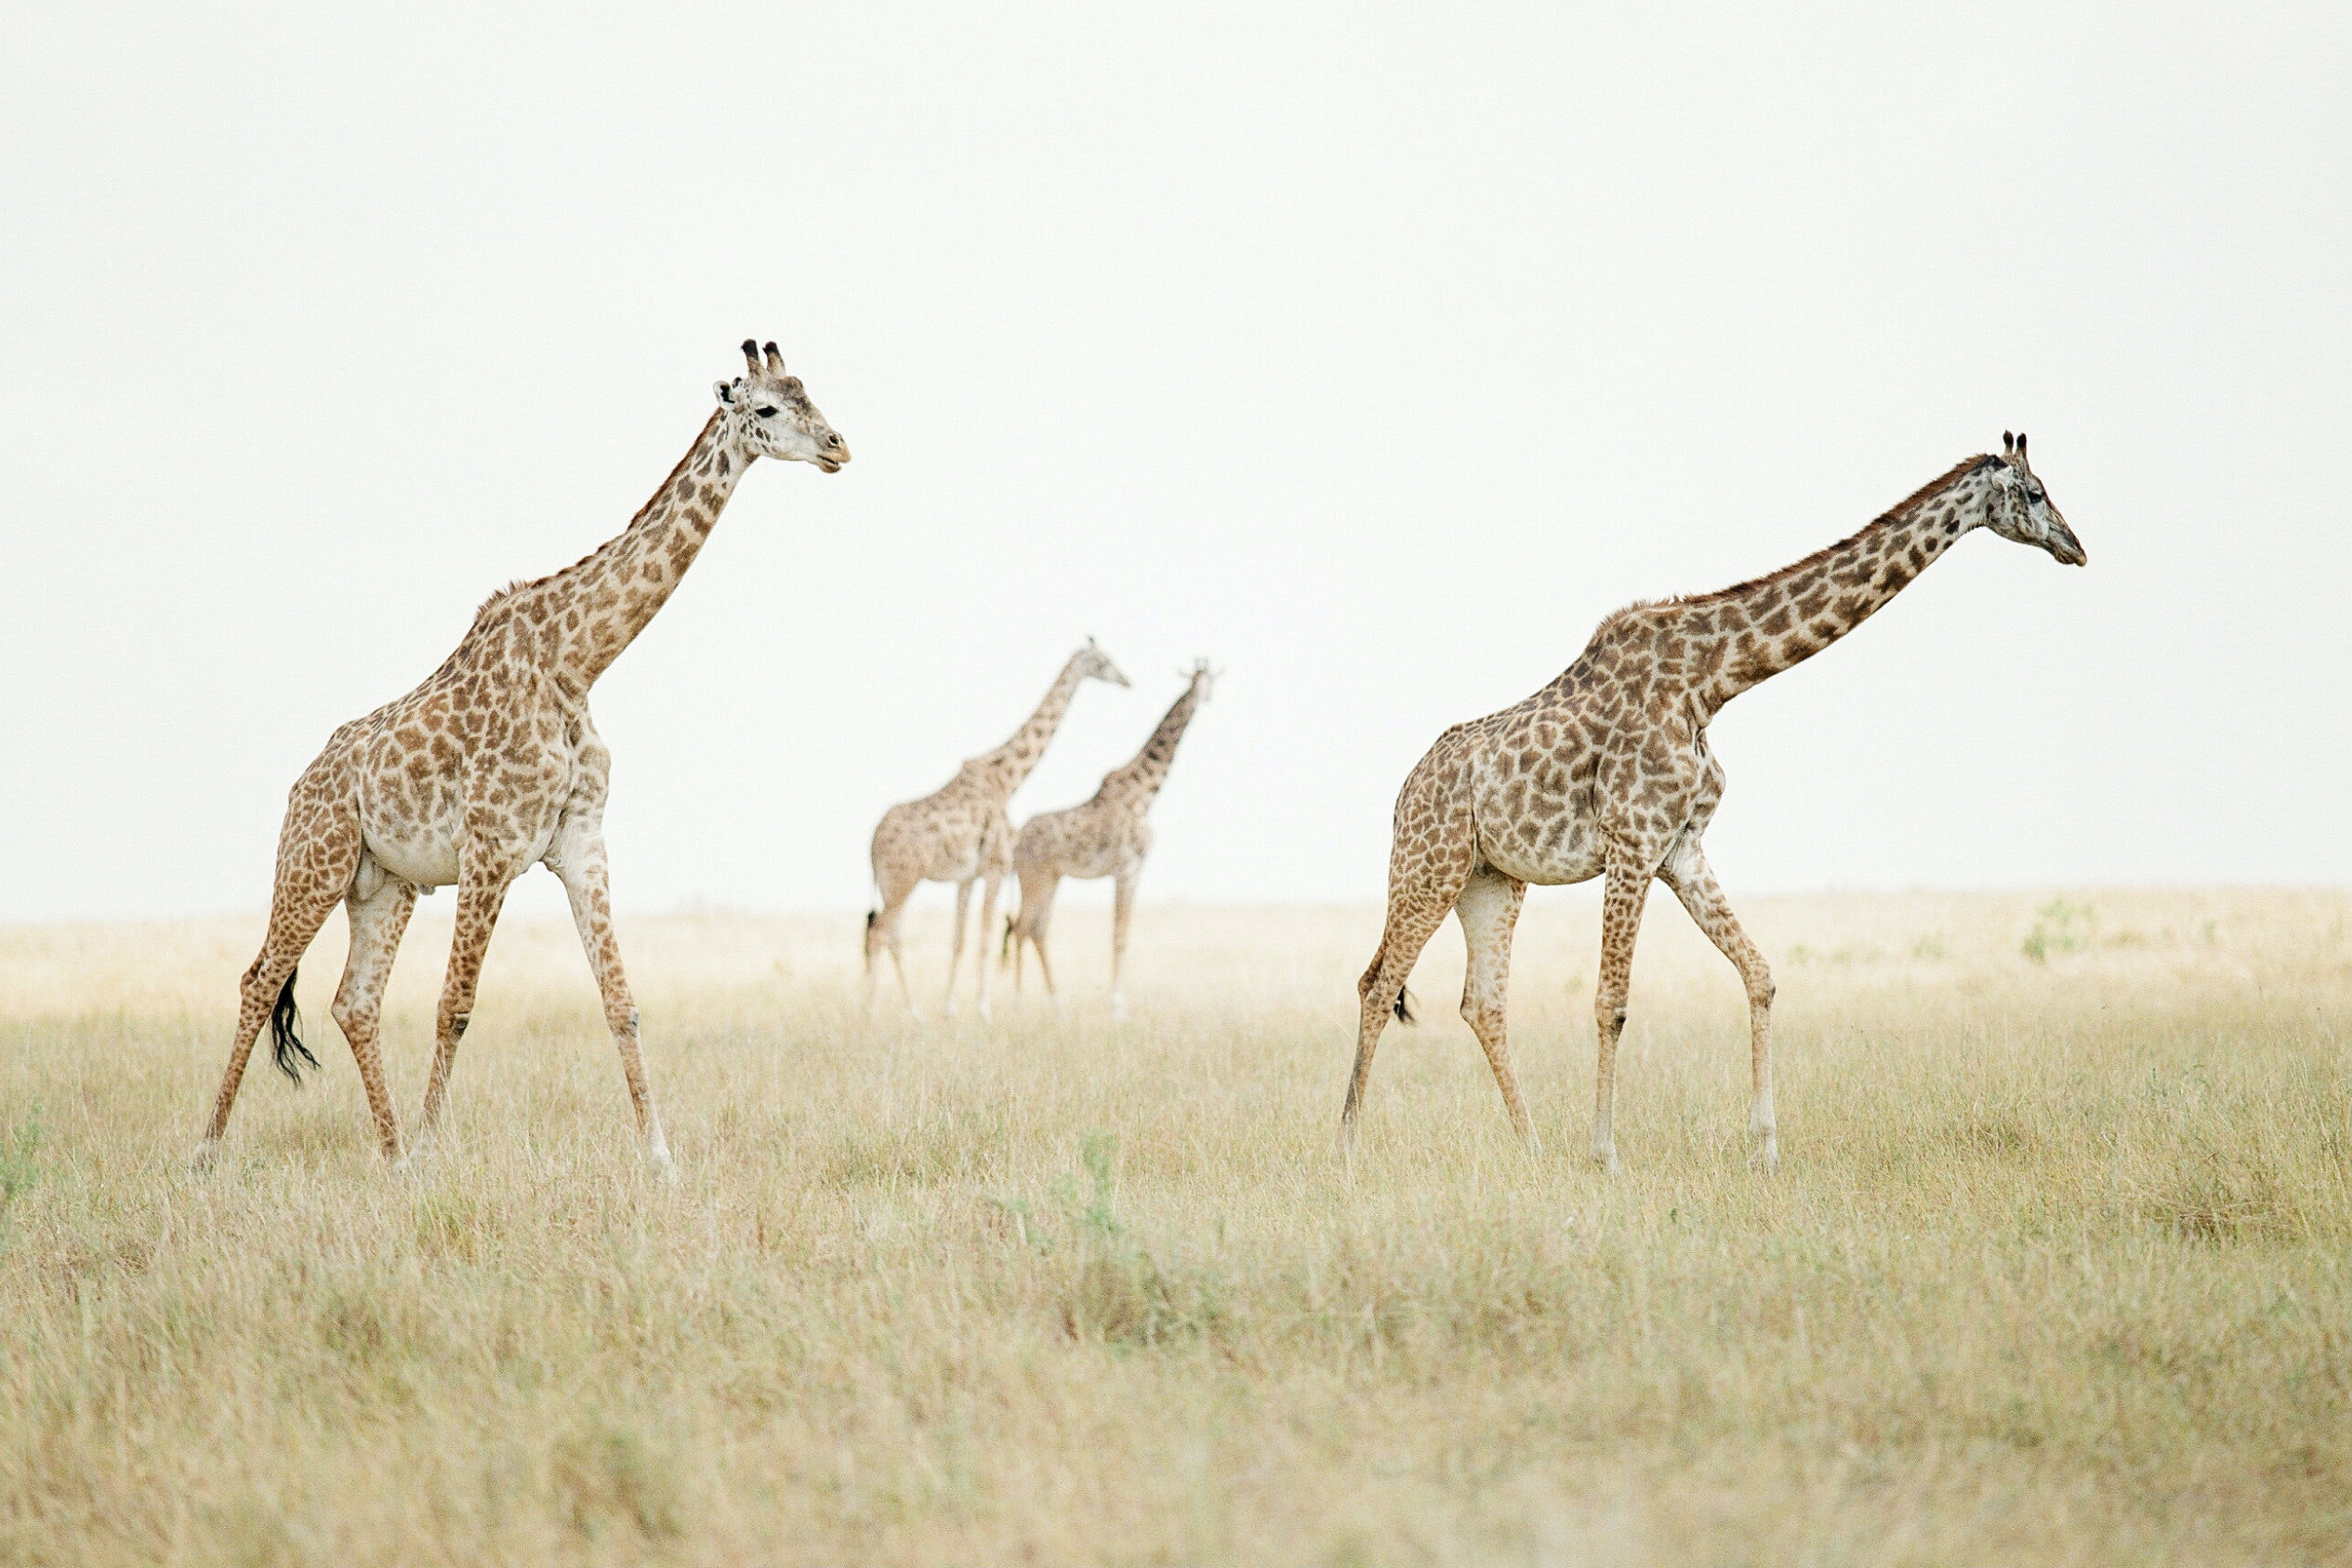 The central Serengeti is home to giraffes, cheetahs, lions, and wildebeests.